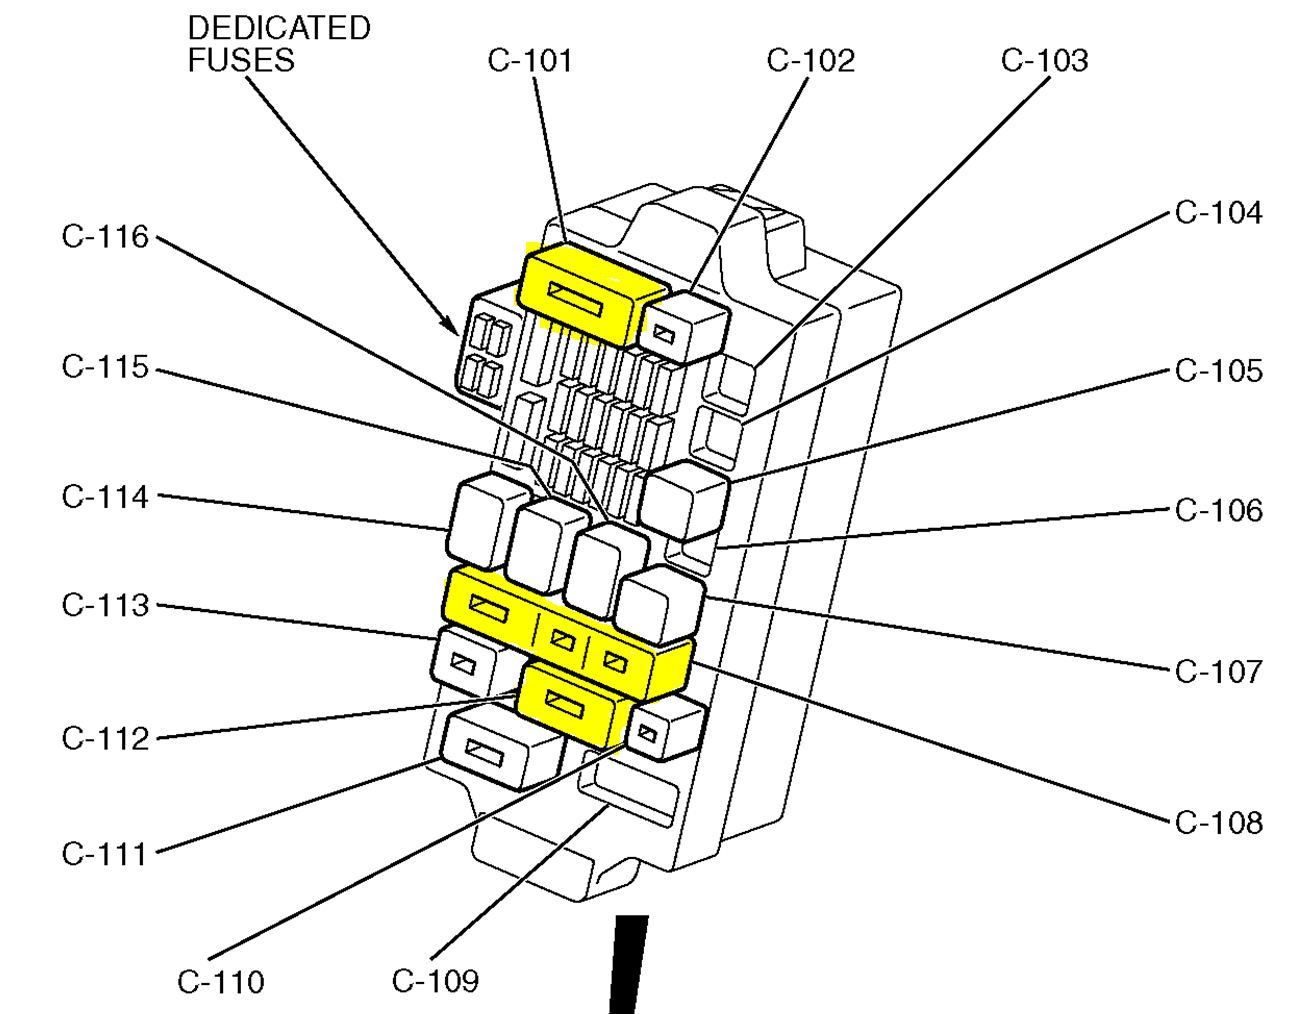 diagram of fuse partment of mitsubishi eclipse 2001 wiring library Dodge Dakota OEM Wheels 2003 eclipse gs 2 4l automatic have no turn signals or hazards rh justanswer 96 mitsubishi eclipse spyder fuse box books of wiring diagram